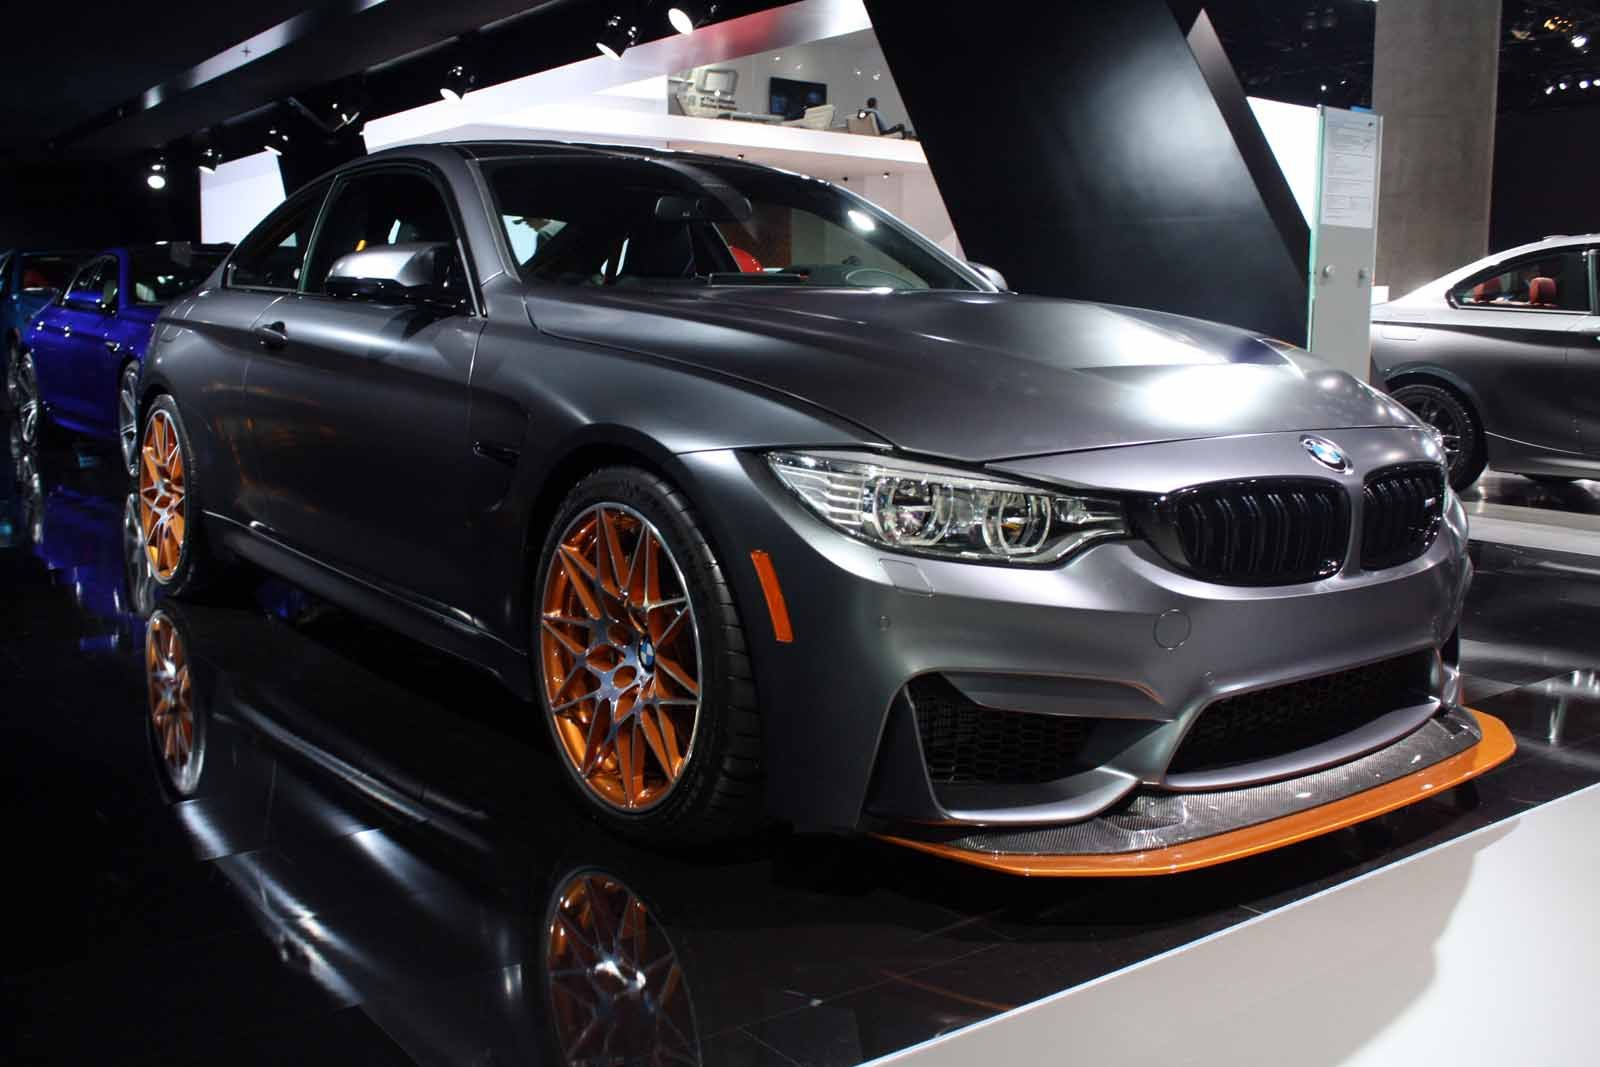 The 2016 BMW M4 GTS BMW Pinterest